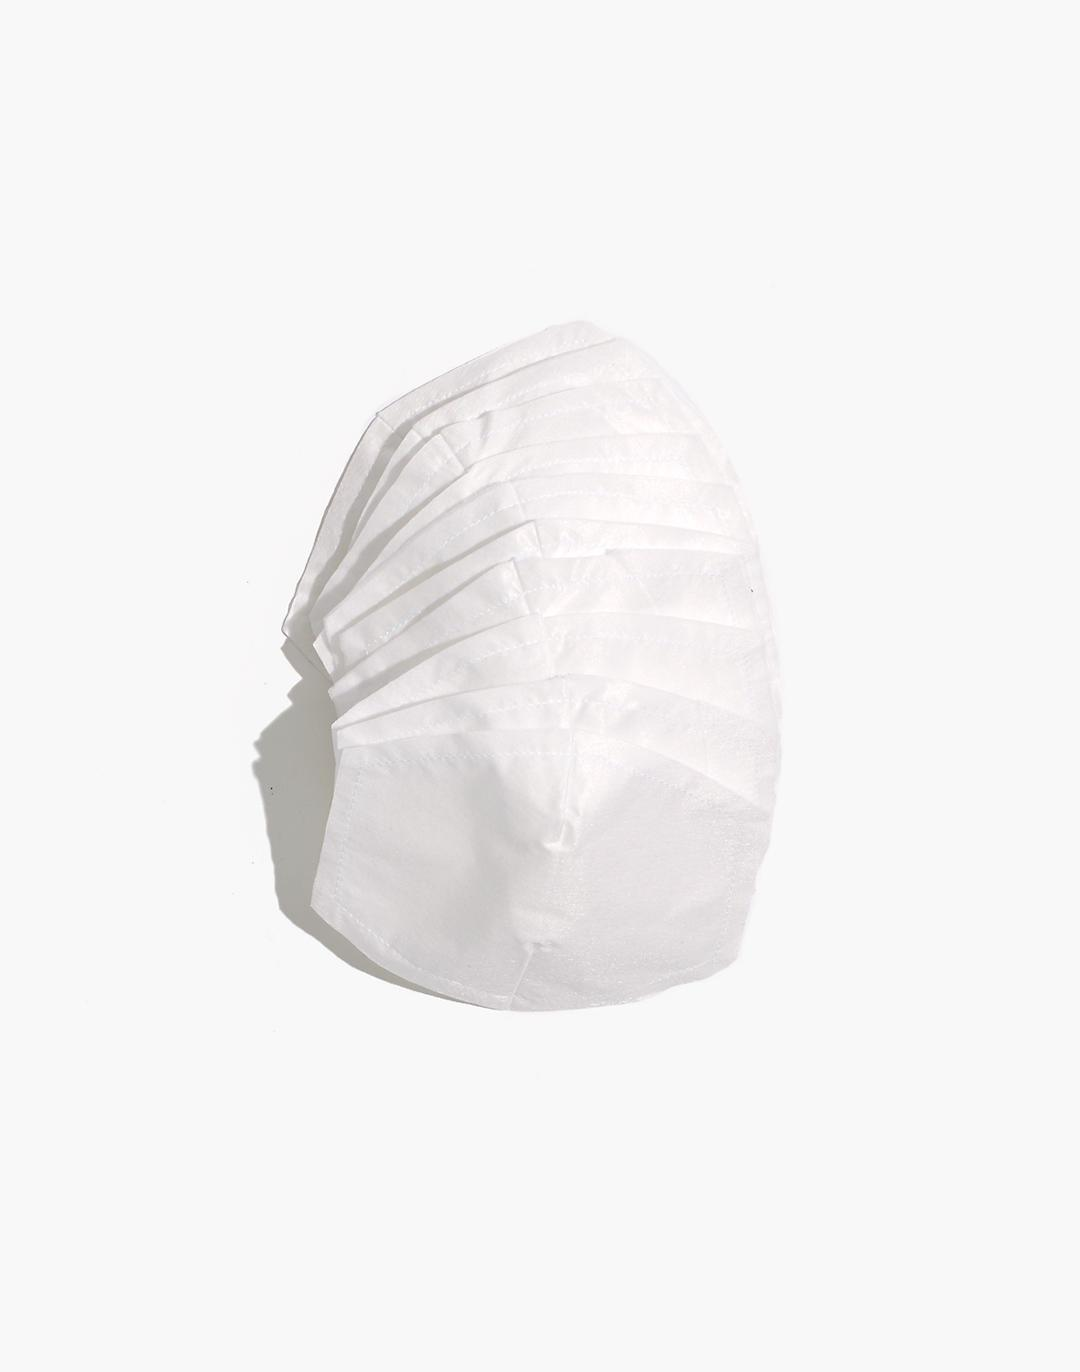 10-Pack Replaceable Mask Filters